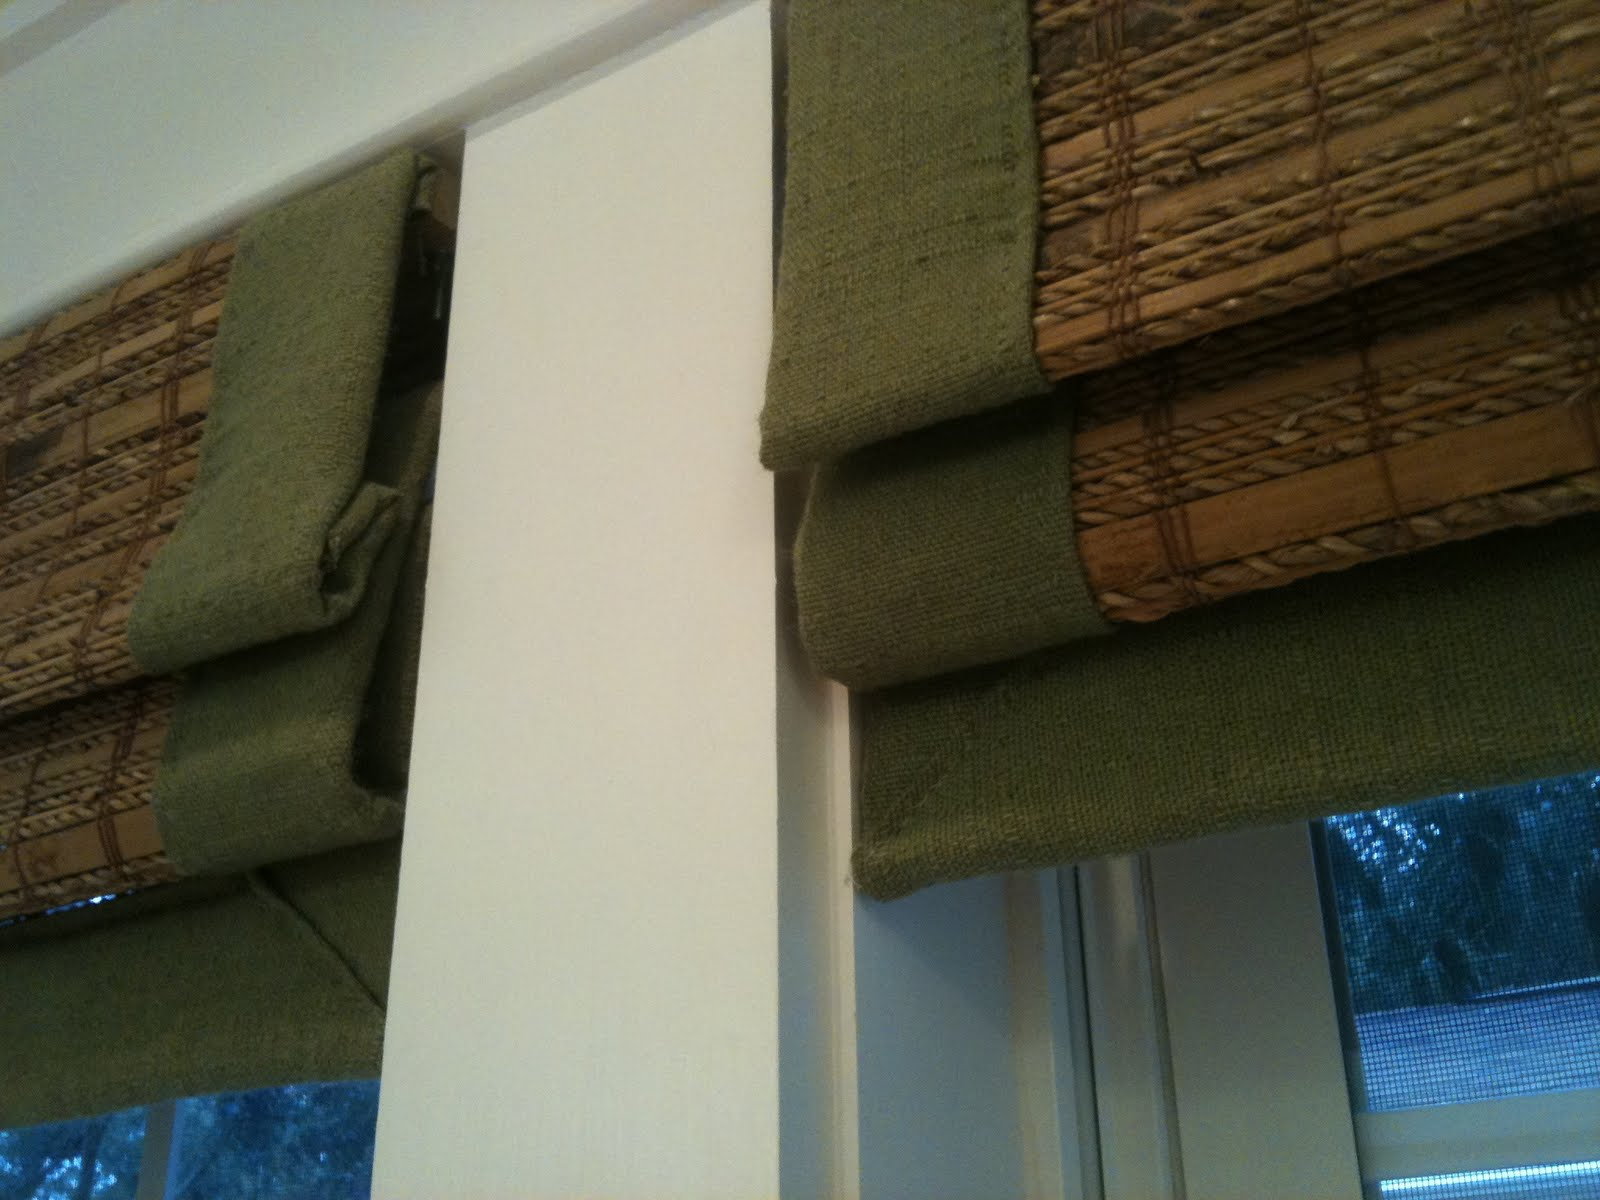 how to install outside mount woven wood shades image 3 from the apps